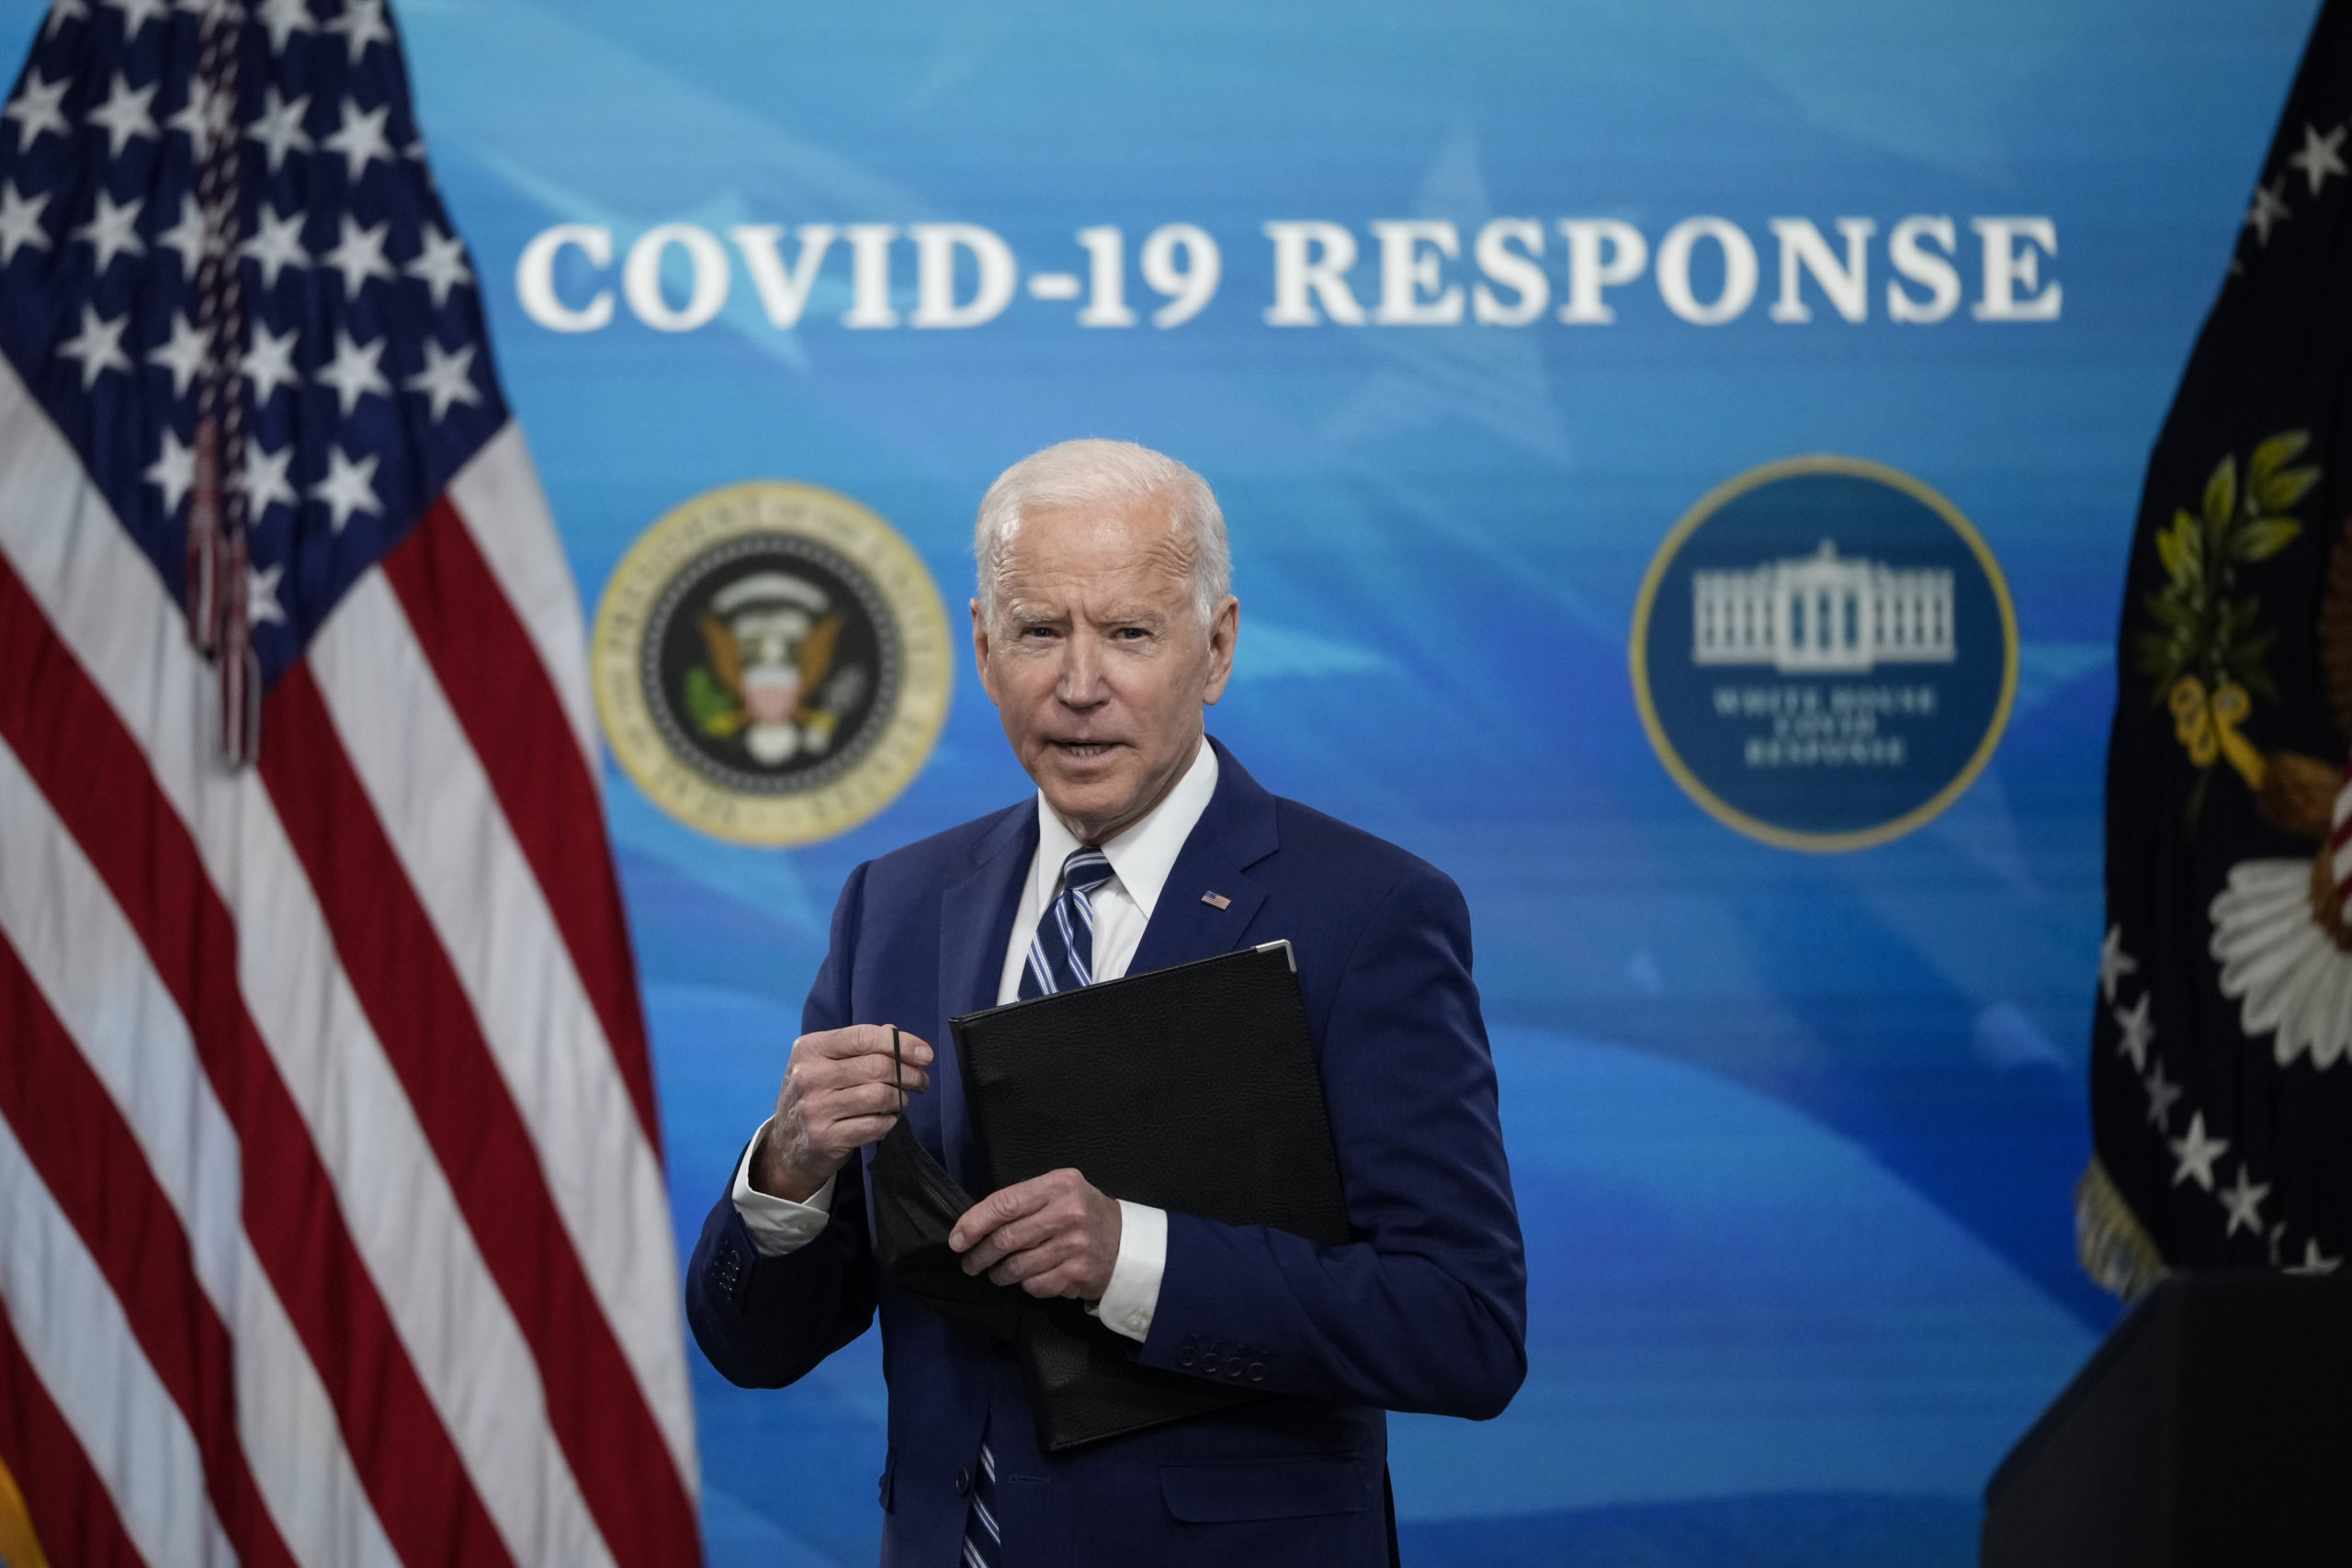 WASHINGTON, DC - MARCH 29: U.S. President Joe Biden responds to a question after delivering remarks on the COVID-19 response and the state of vaccinations in the South Court Auditorium at the White House complex on March 29, 2021 in Washington, DC. President Biden announced Monday that 90% of Americans will have a vaccination site within five miles of their homes by April 19. (Photo by Drew Angerer/Getty Images)